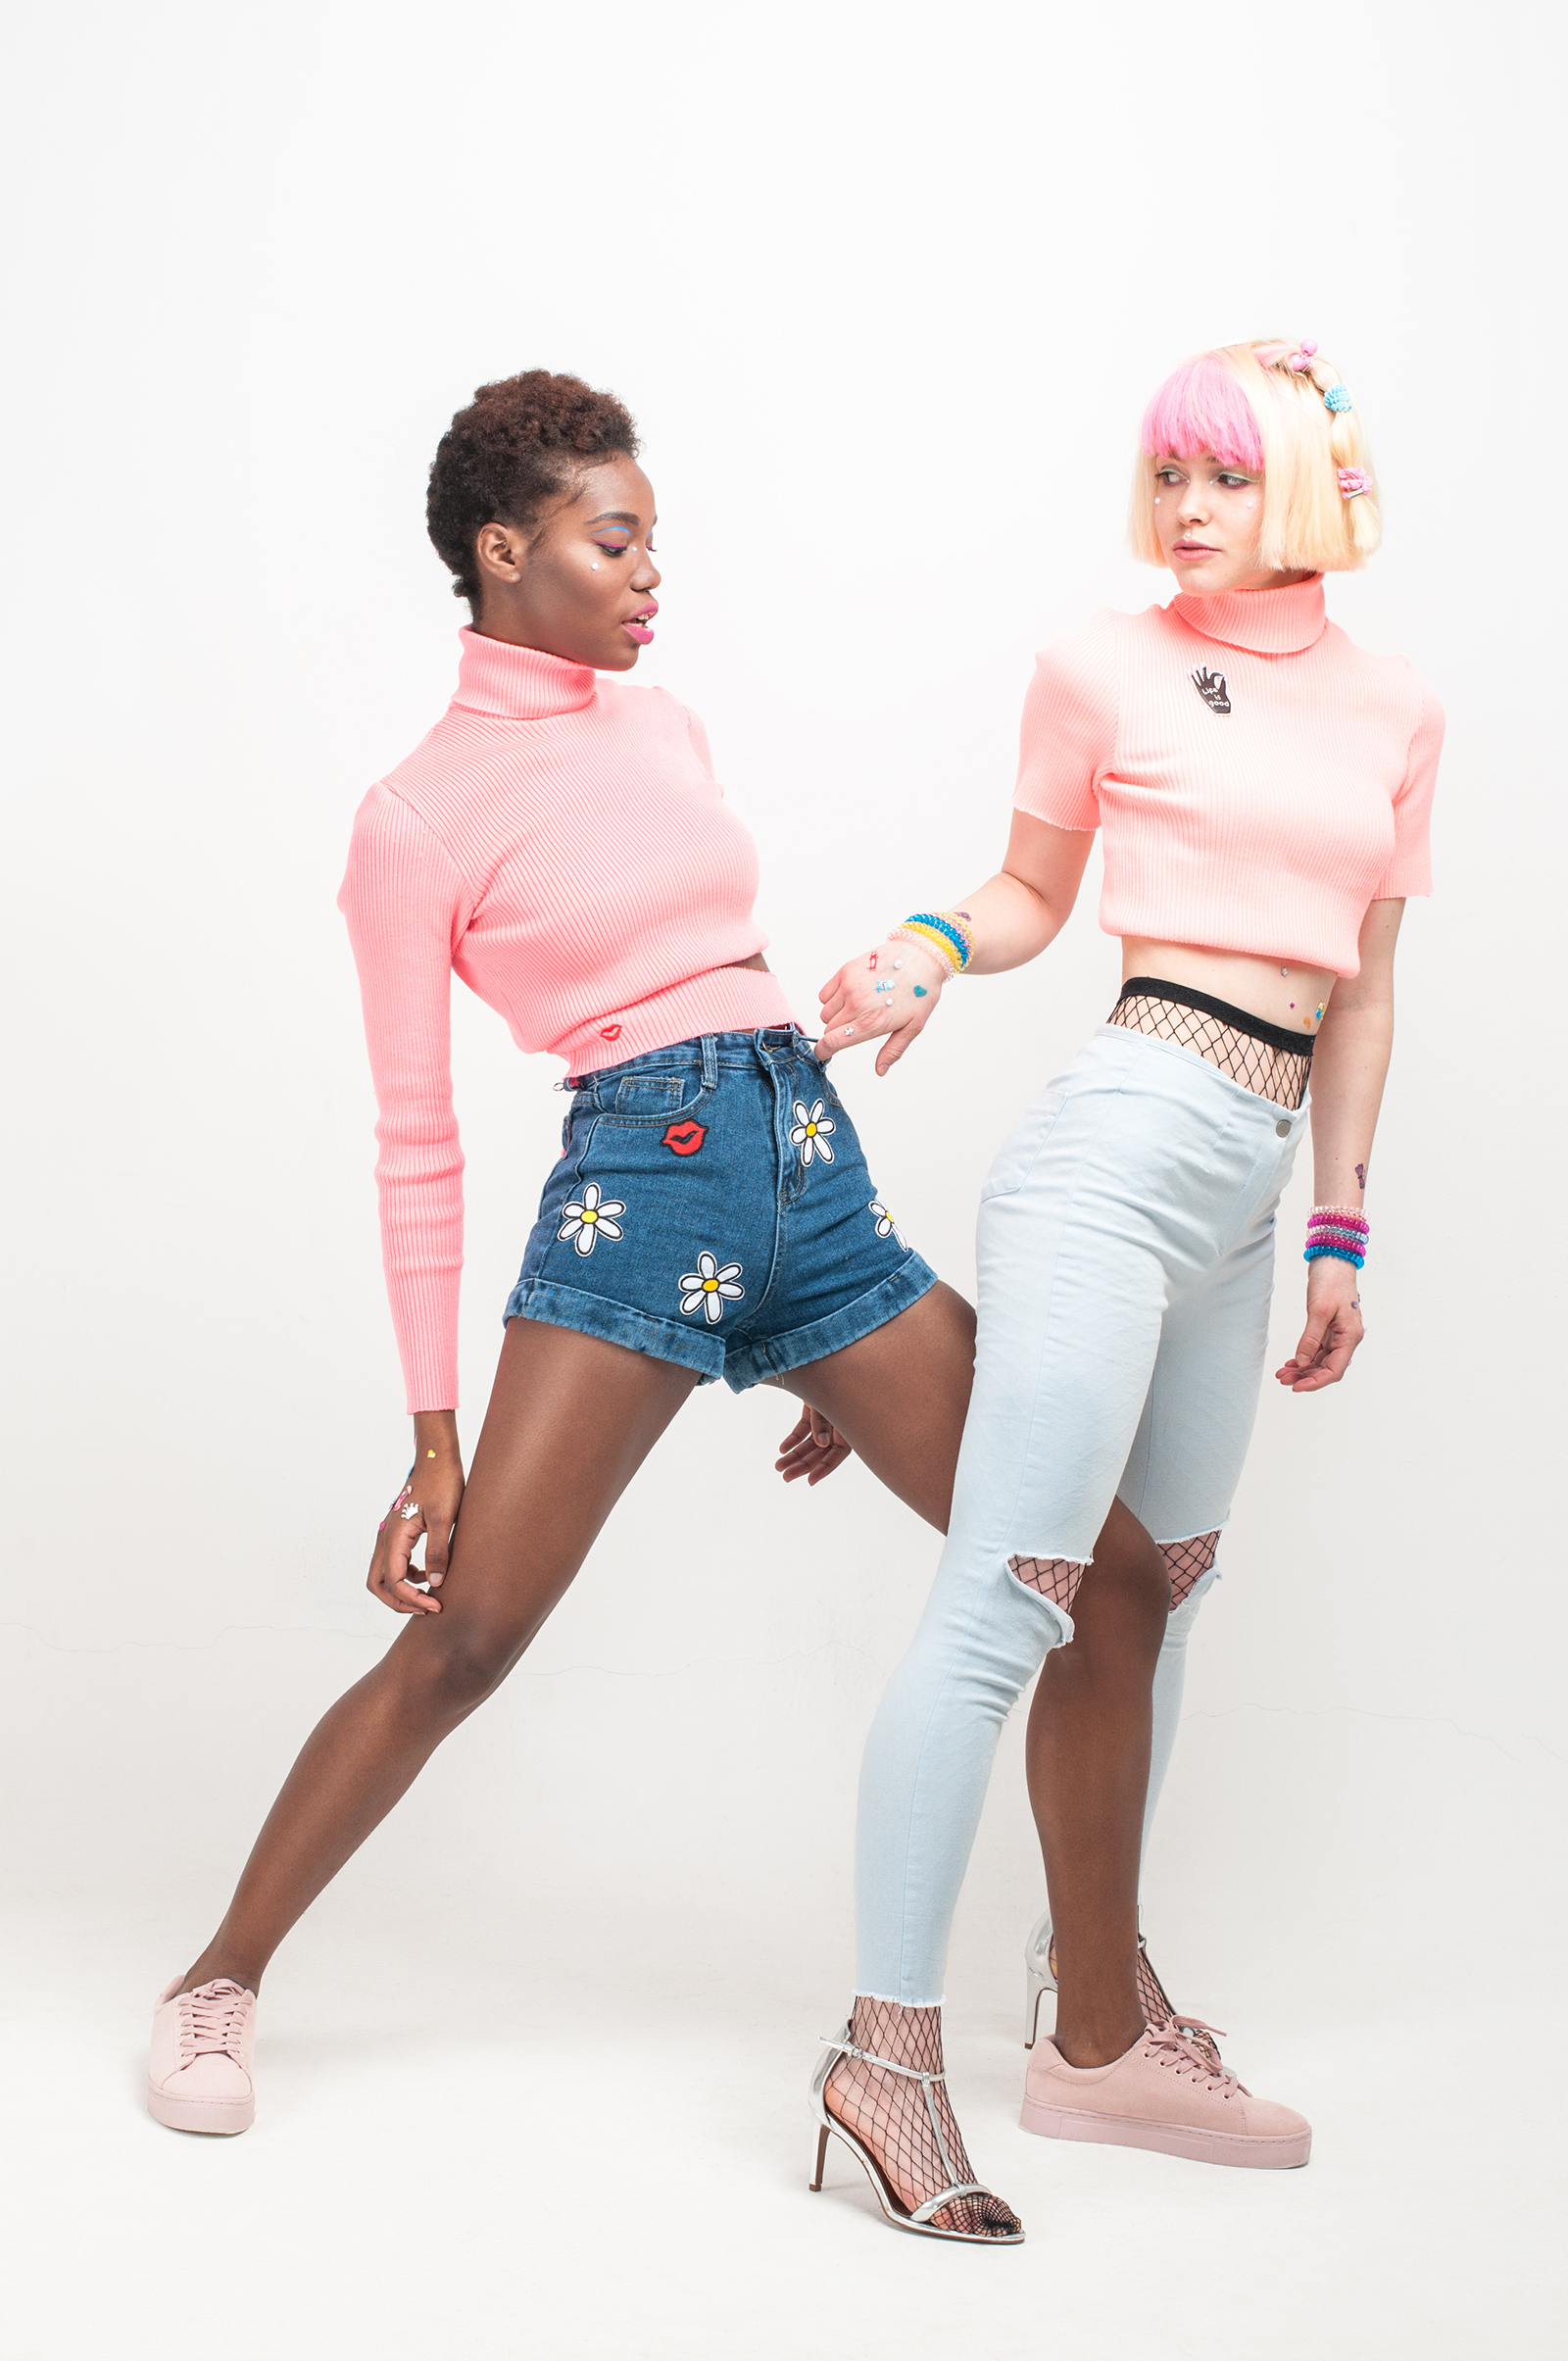 From left to right: Sweater: #LenaGolova Denim shorts: #LenaGolova Pink sneakers: H&M Sweater: #LenaGolova Jeans: Monki Tights: Calzedonia Shoes: H&M